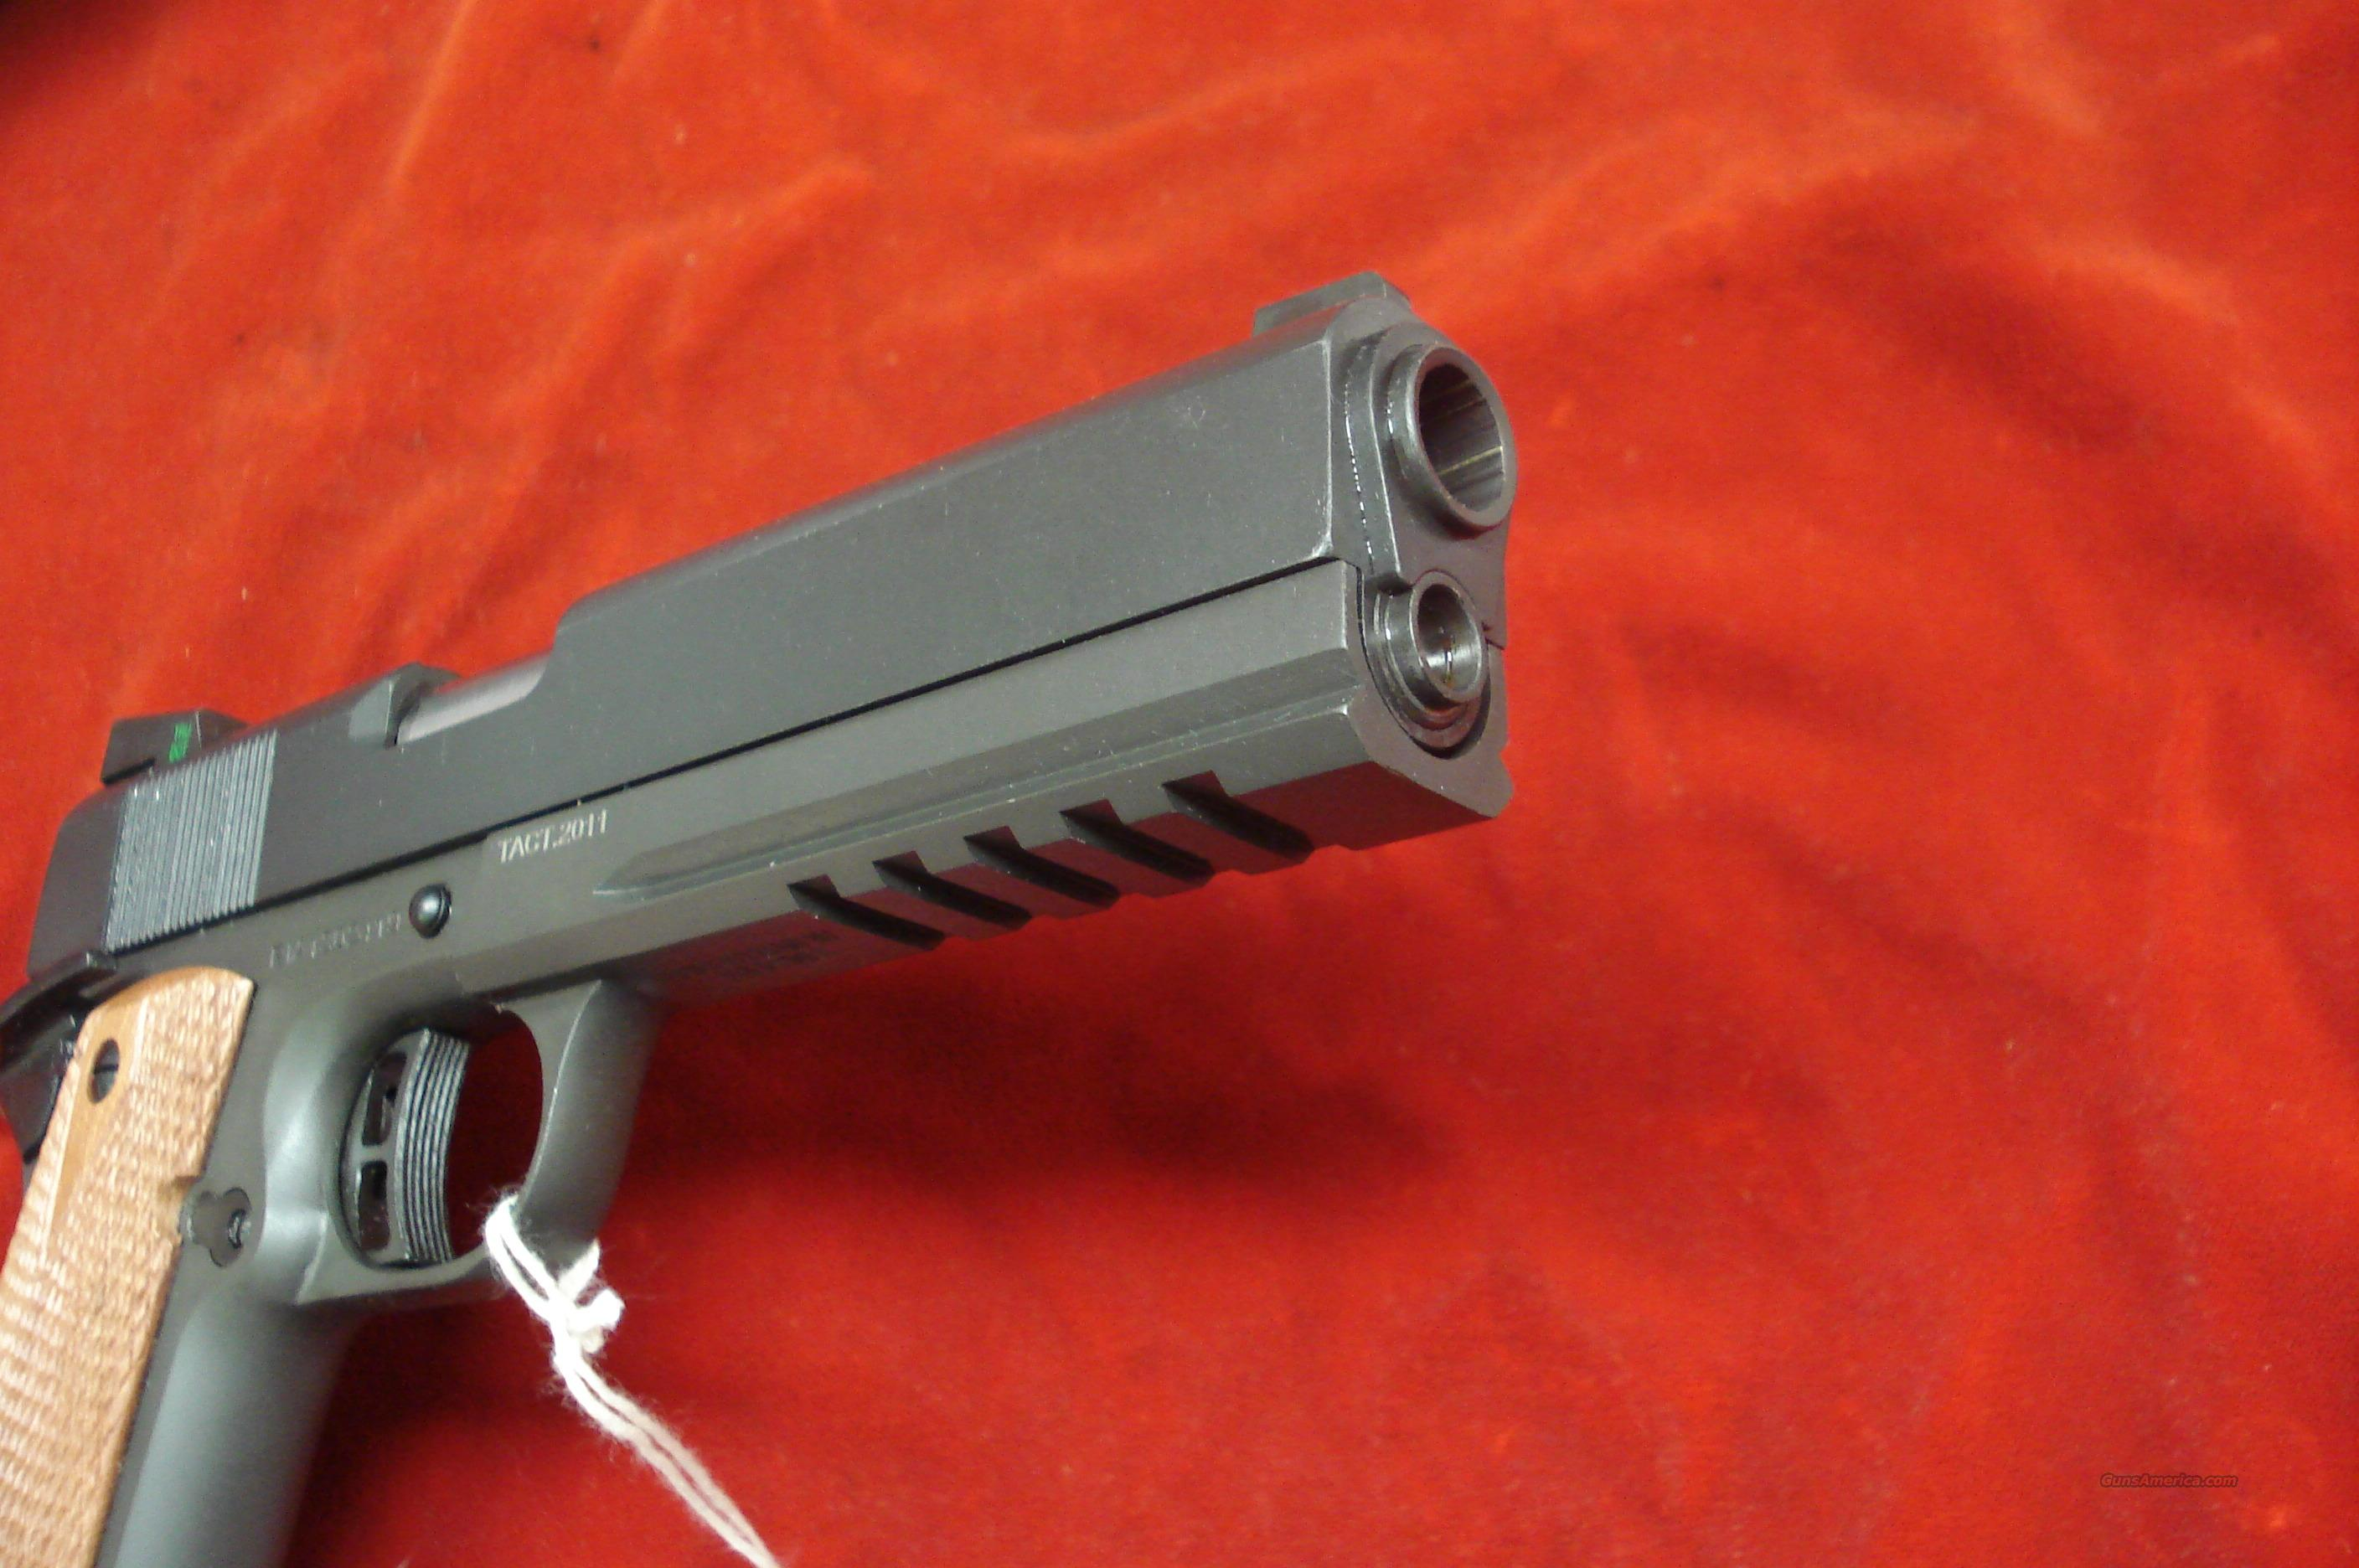 Rock Island 1911 Frame With Rail | Amtframe org